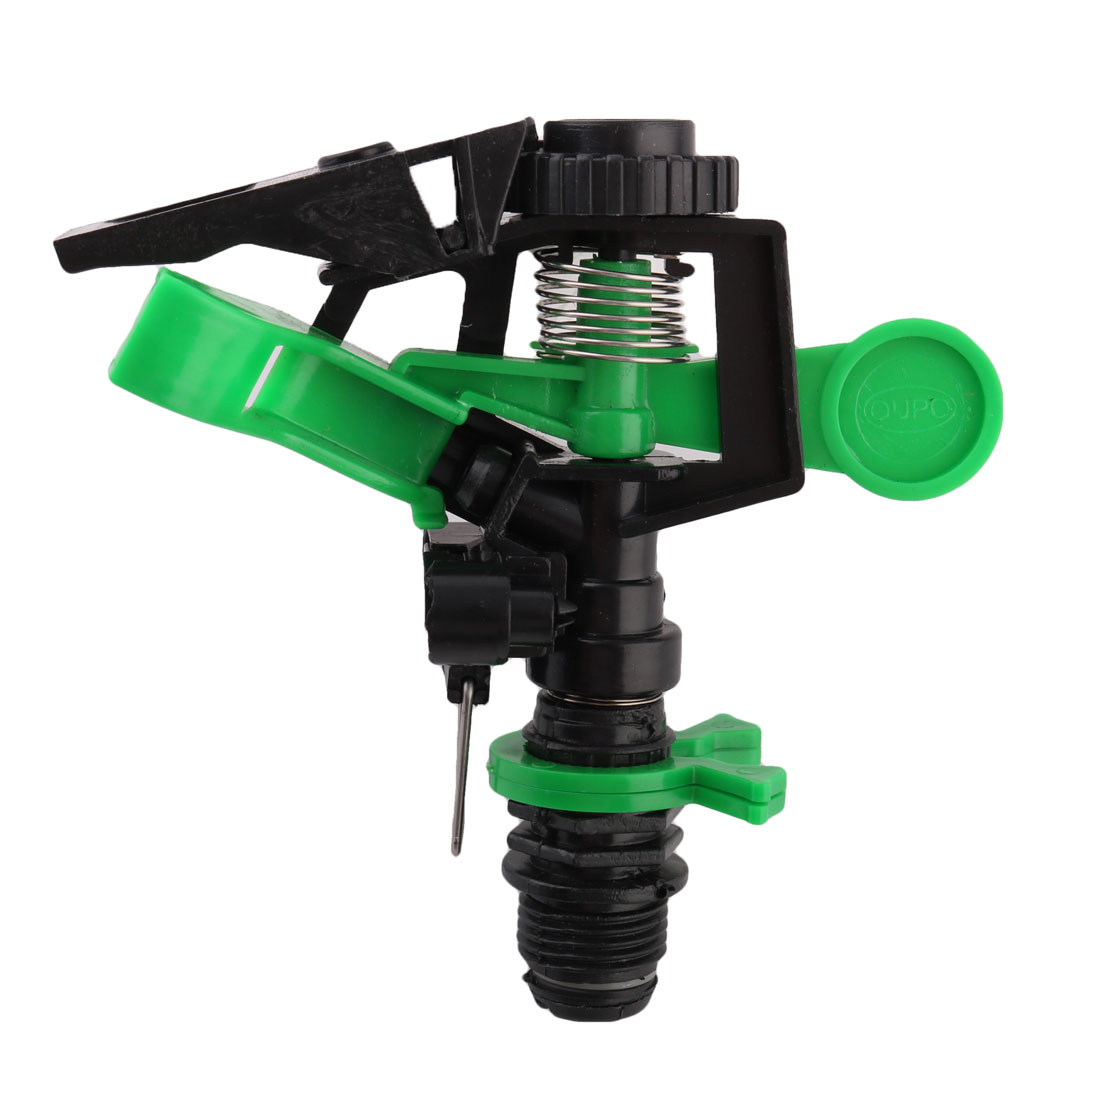 Plants Lawn Irrigation Water Sprinkler Nozzle Head 1/2BSP Mounting Dia